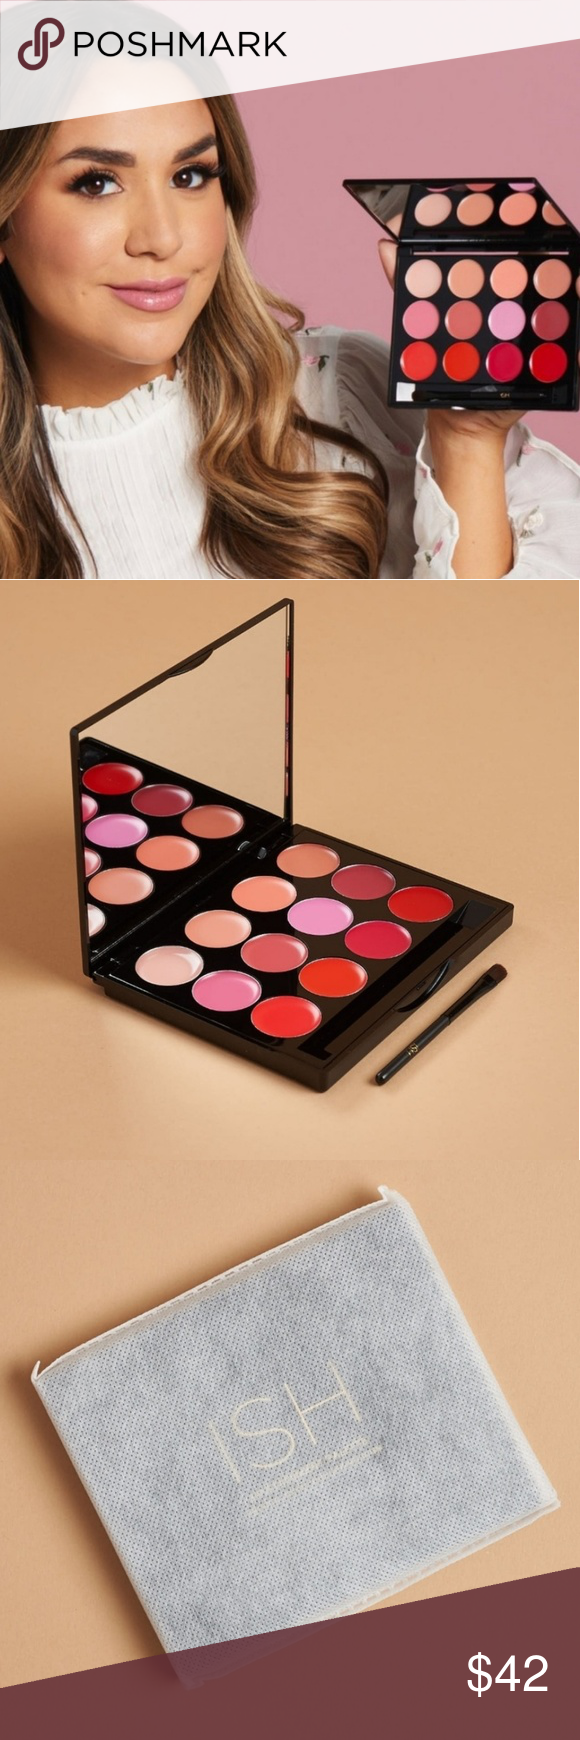 ISH Lip Statement Palette With these nudes and pops of colors your lips will create a bold statement these 11 colors are enriched with rose extracts shea butter jojoba oil and aloe vera for extra moisture and easy wear gluten free and cruelty  free ISH Makeup Lipstick #jojobaoil